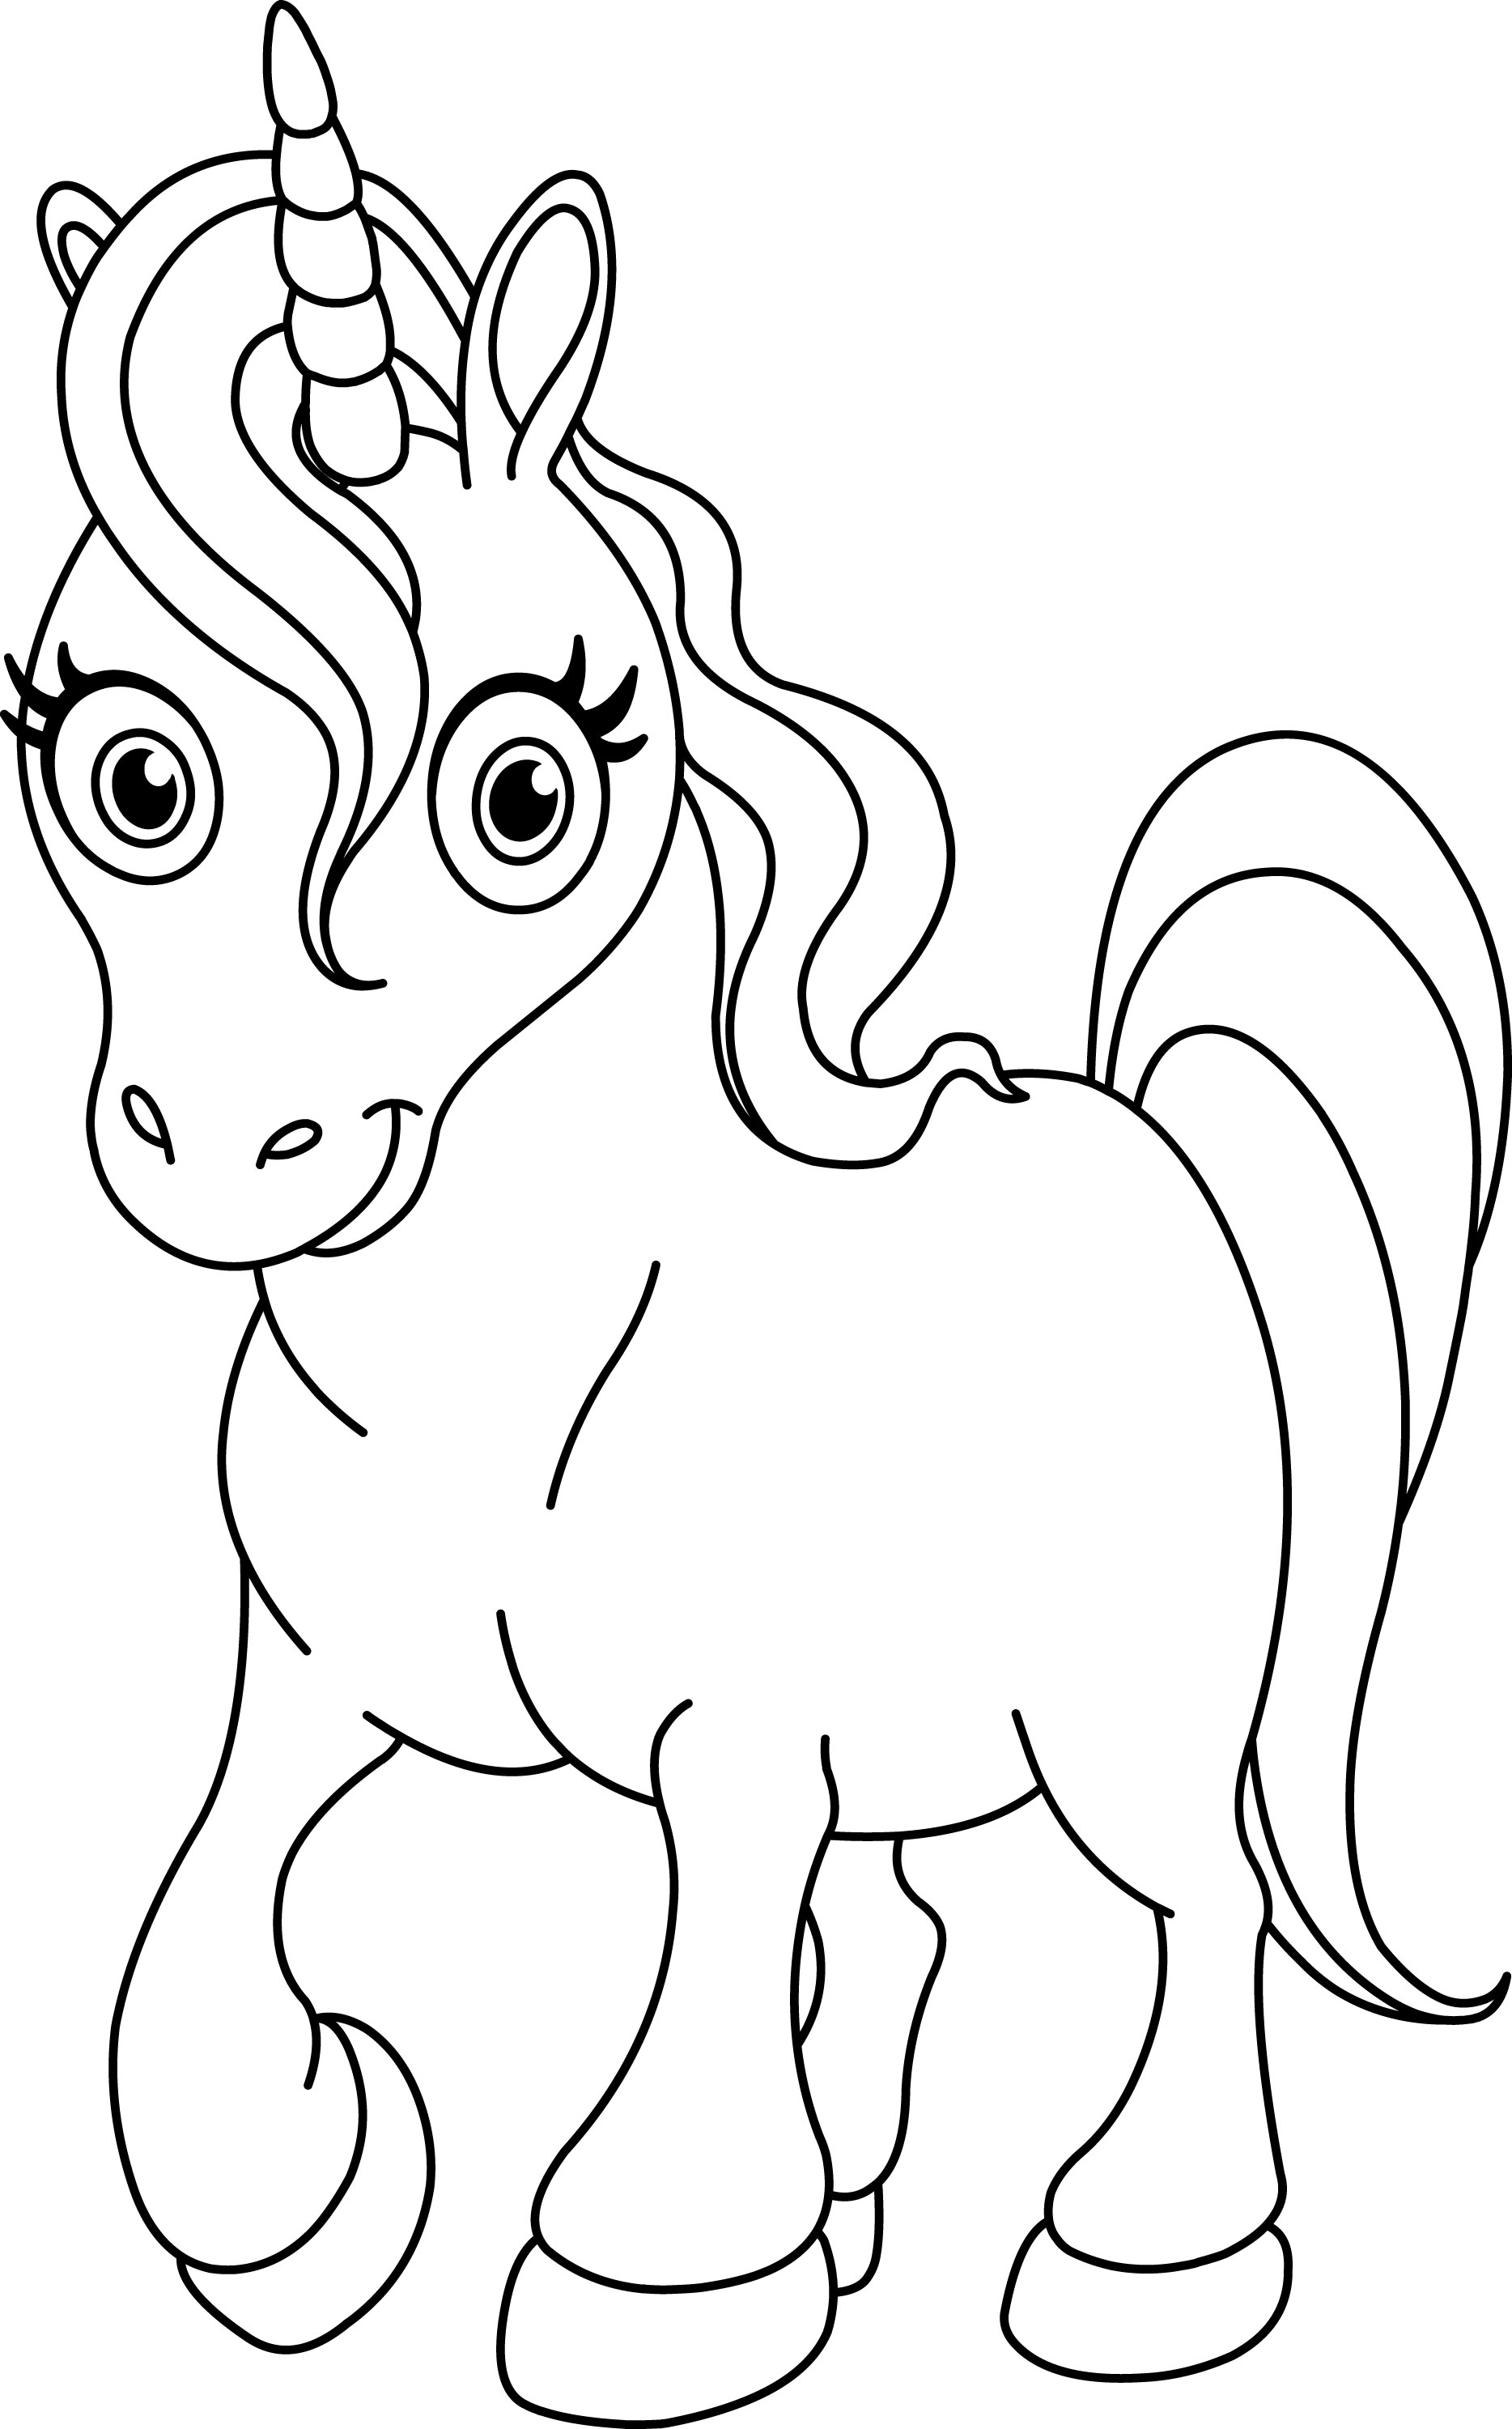 coloring worksheets for toddlers unicorn coloring pages to download and print for free toddlers worksheets for coloring